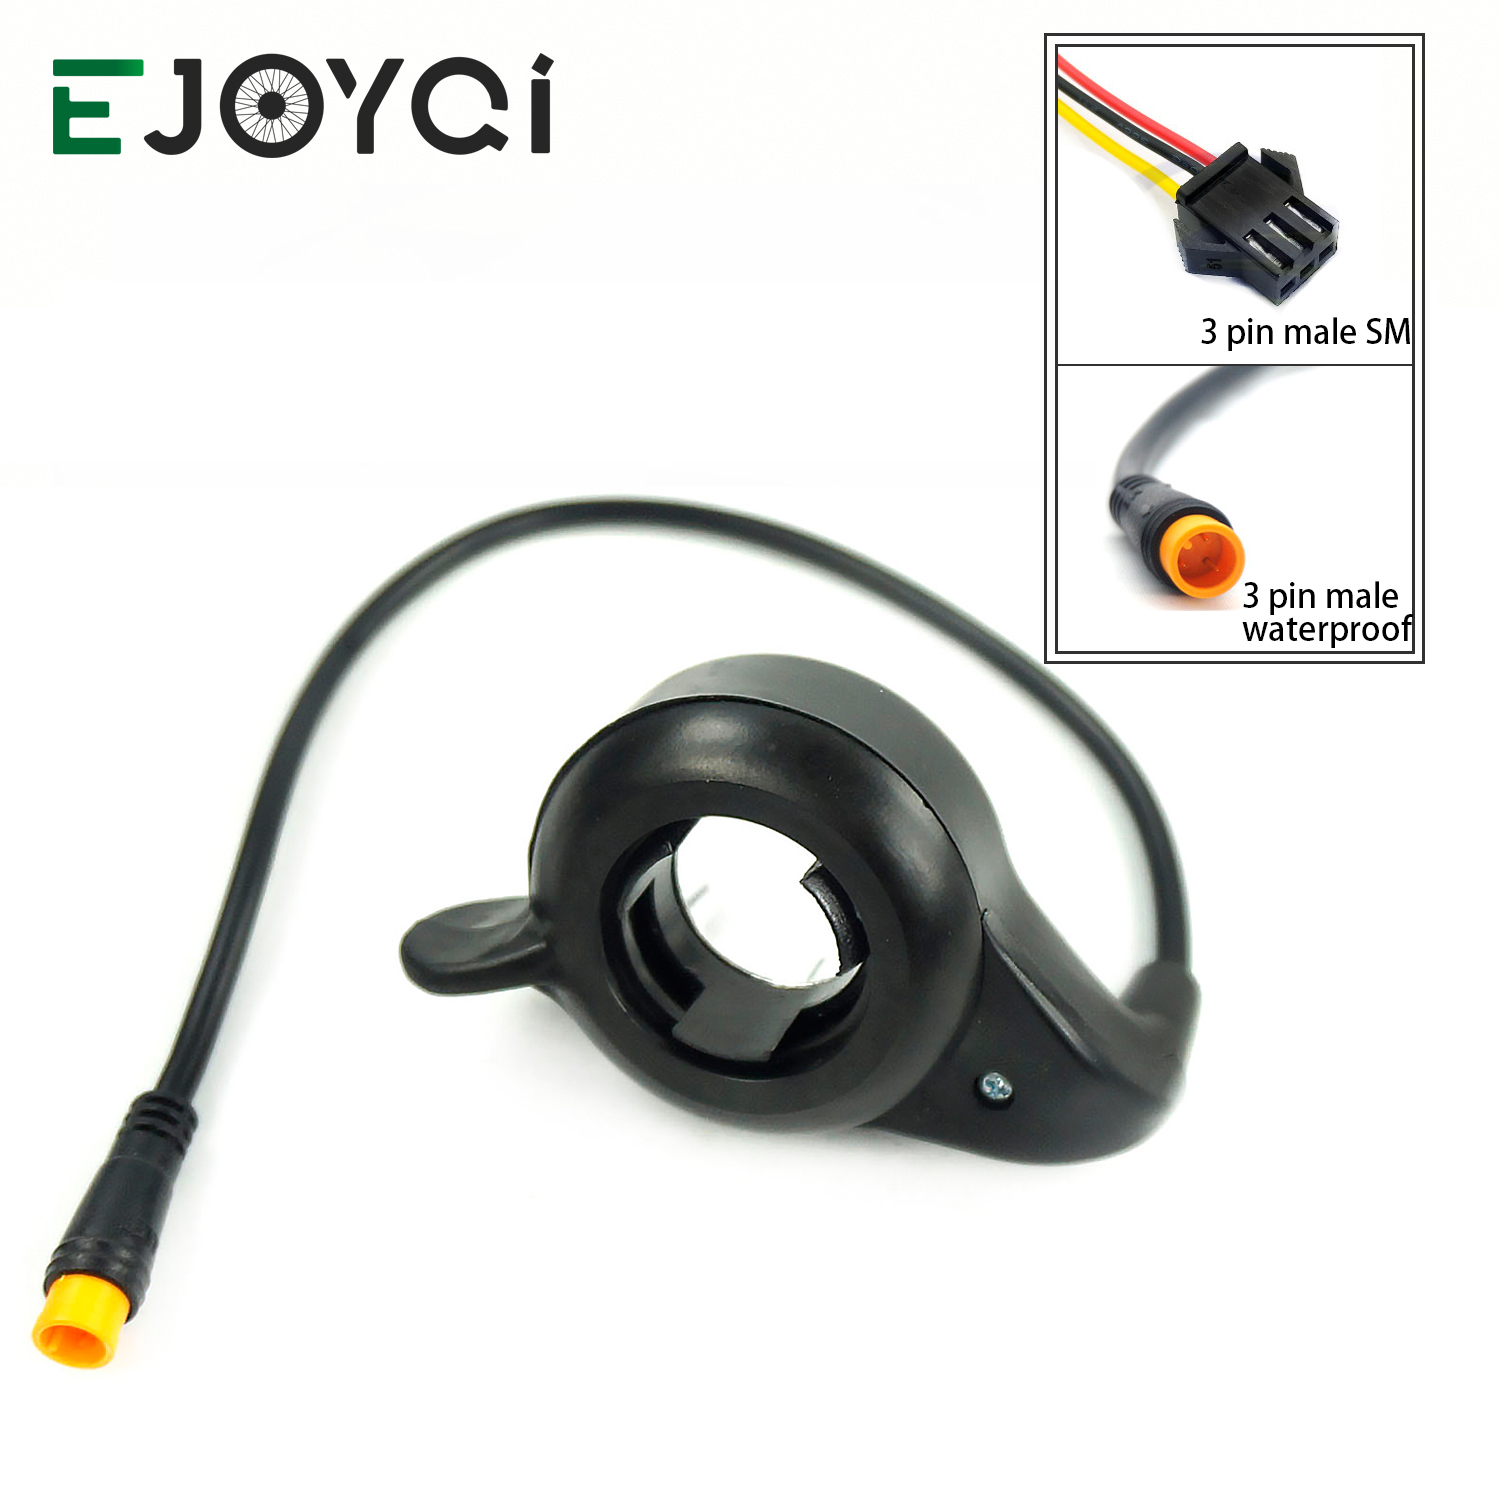 EJOYQI WUXING Brand Ebike FT 21X Finger Thumb Throttle Right Hand 3 Pin SM Waterproof Connector Electric Bicycle Part